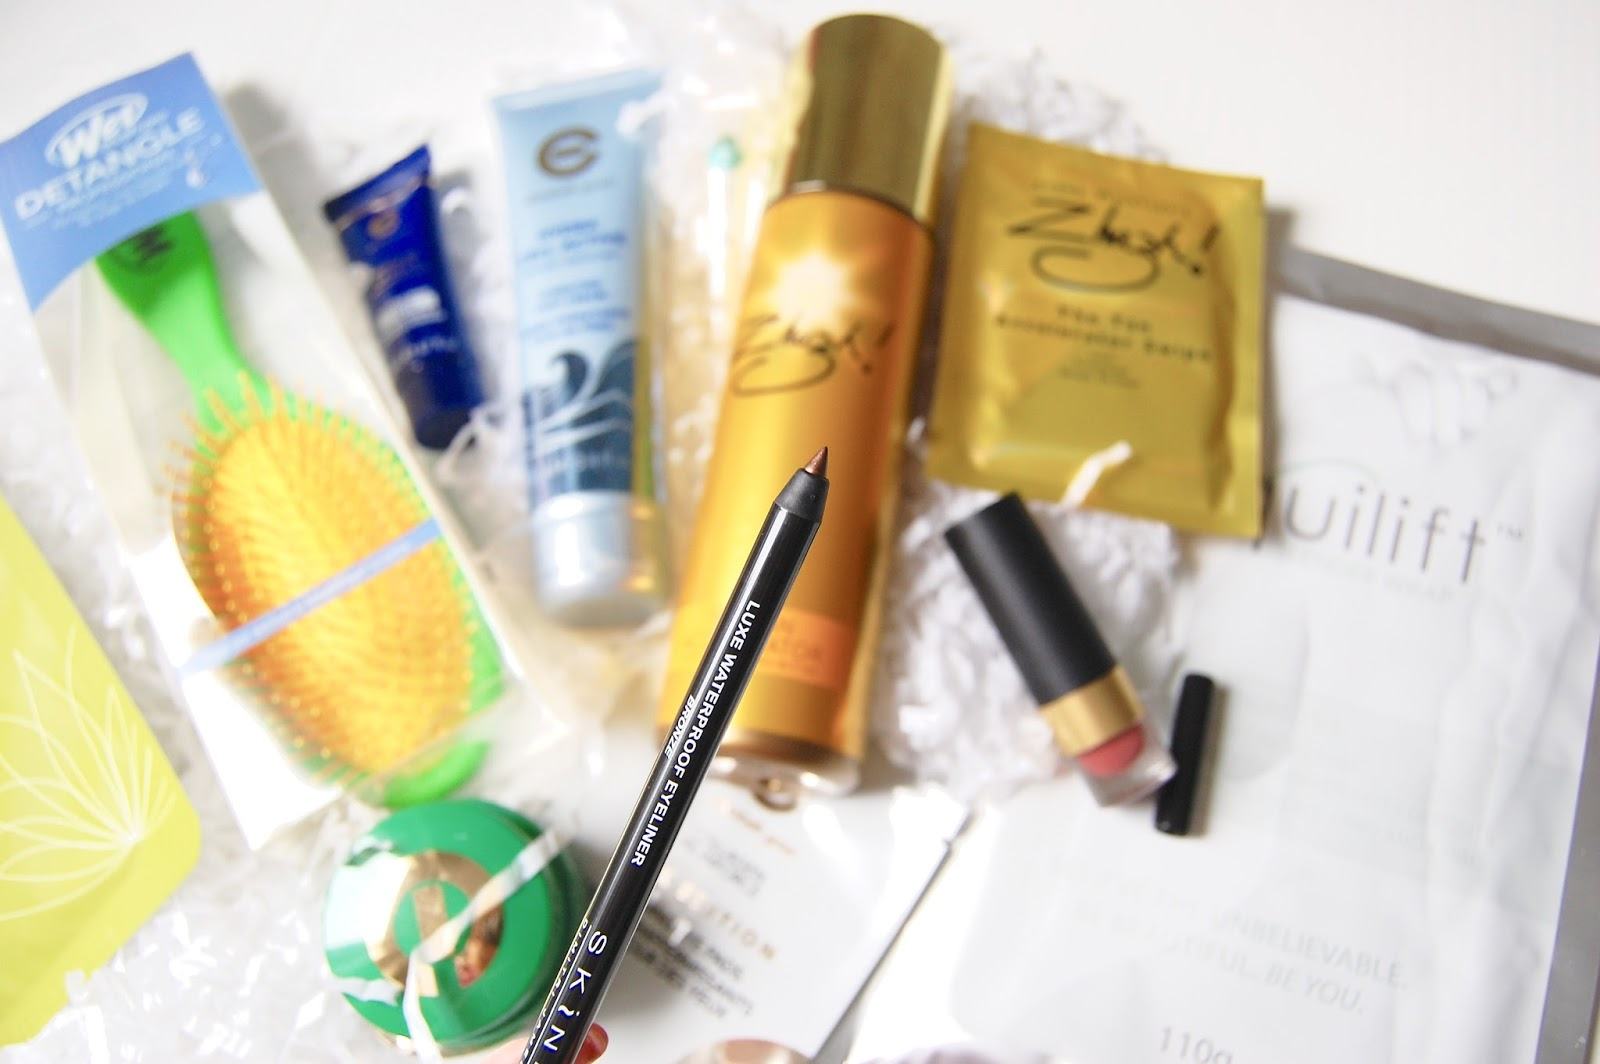 See beauty products that Ideal World have!